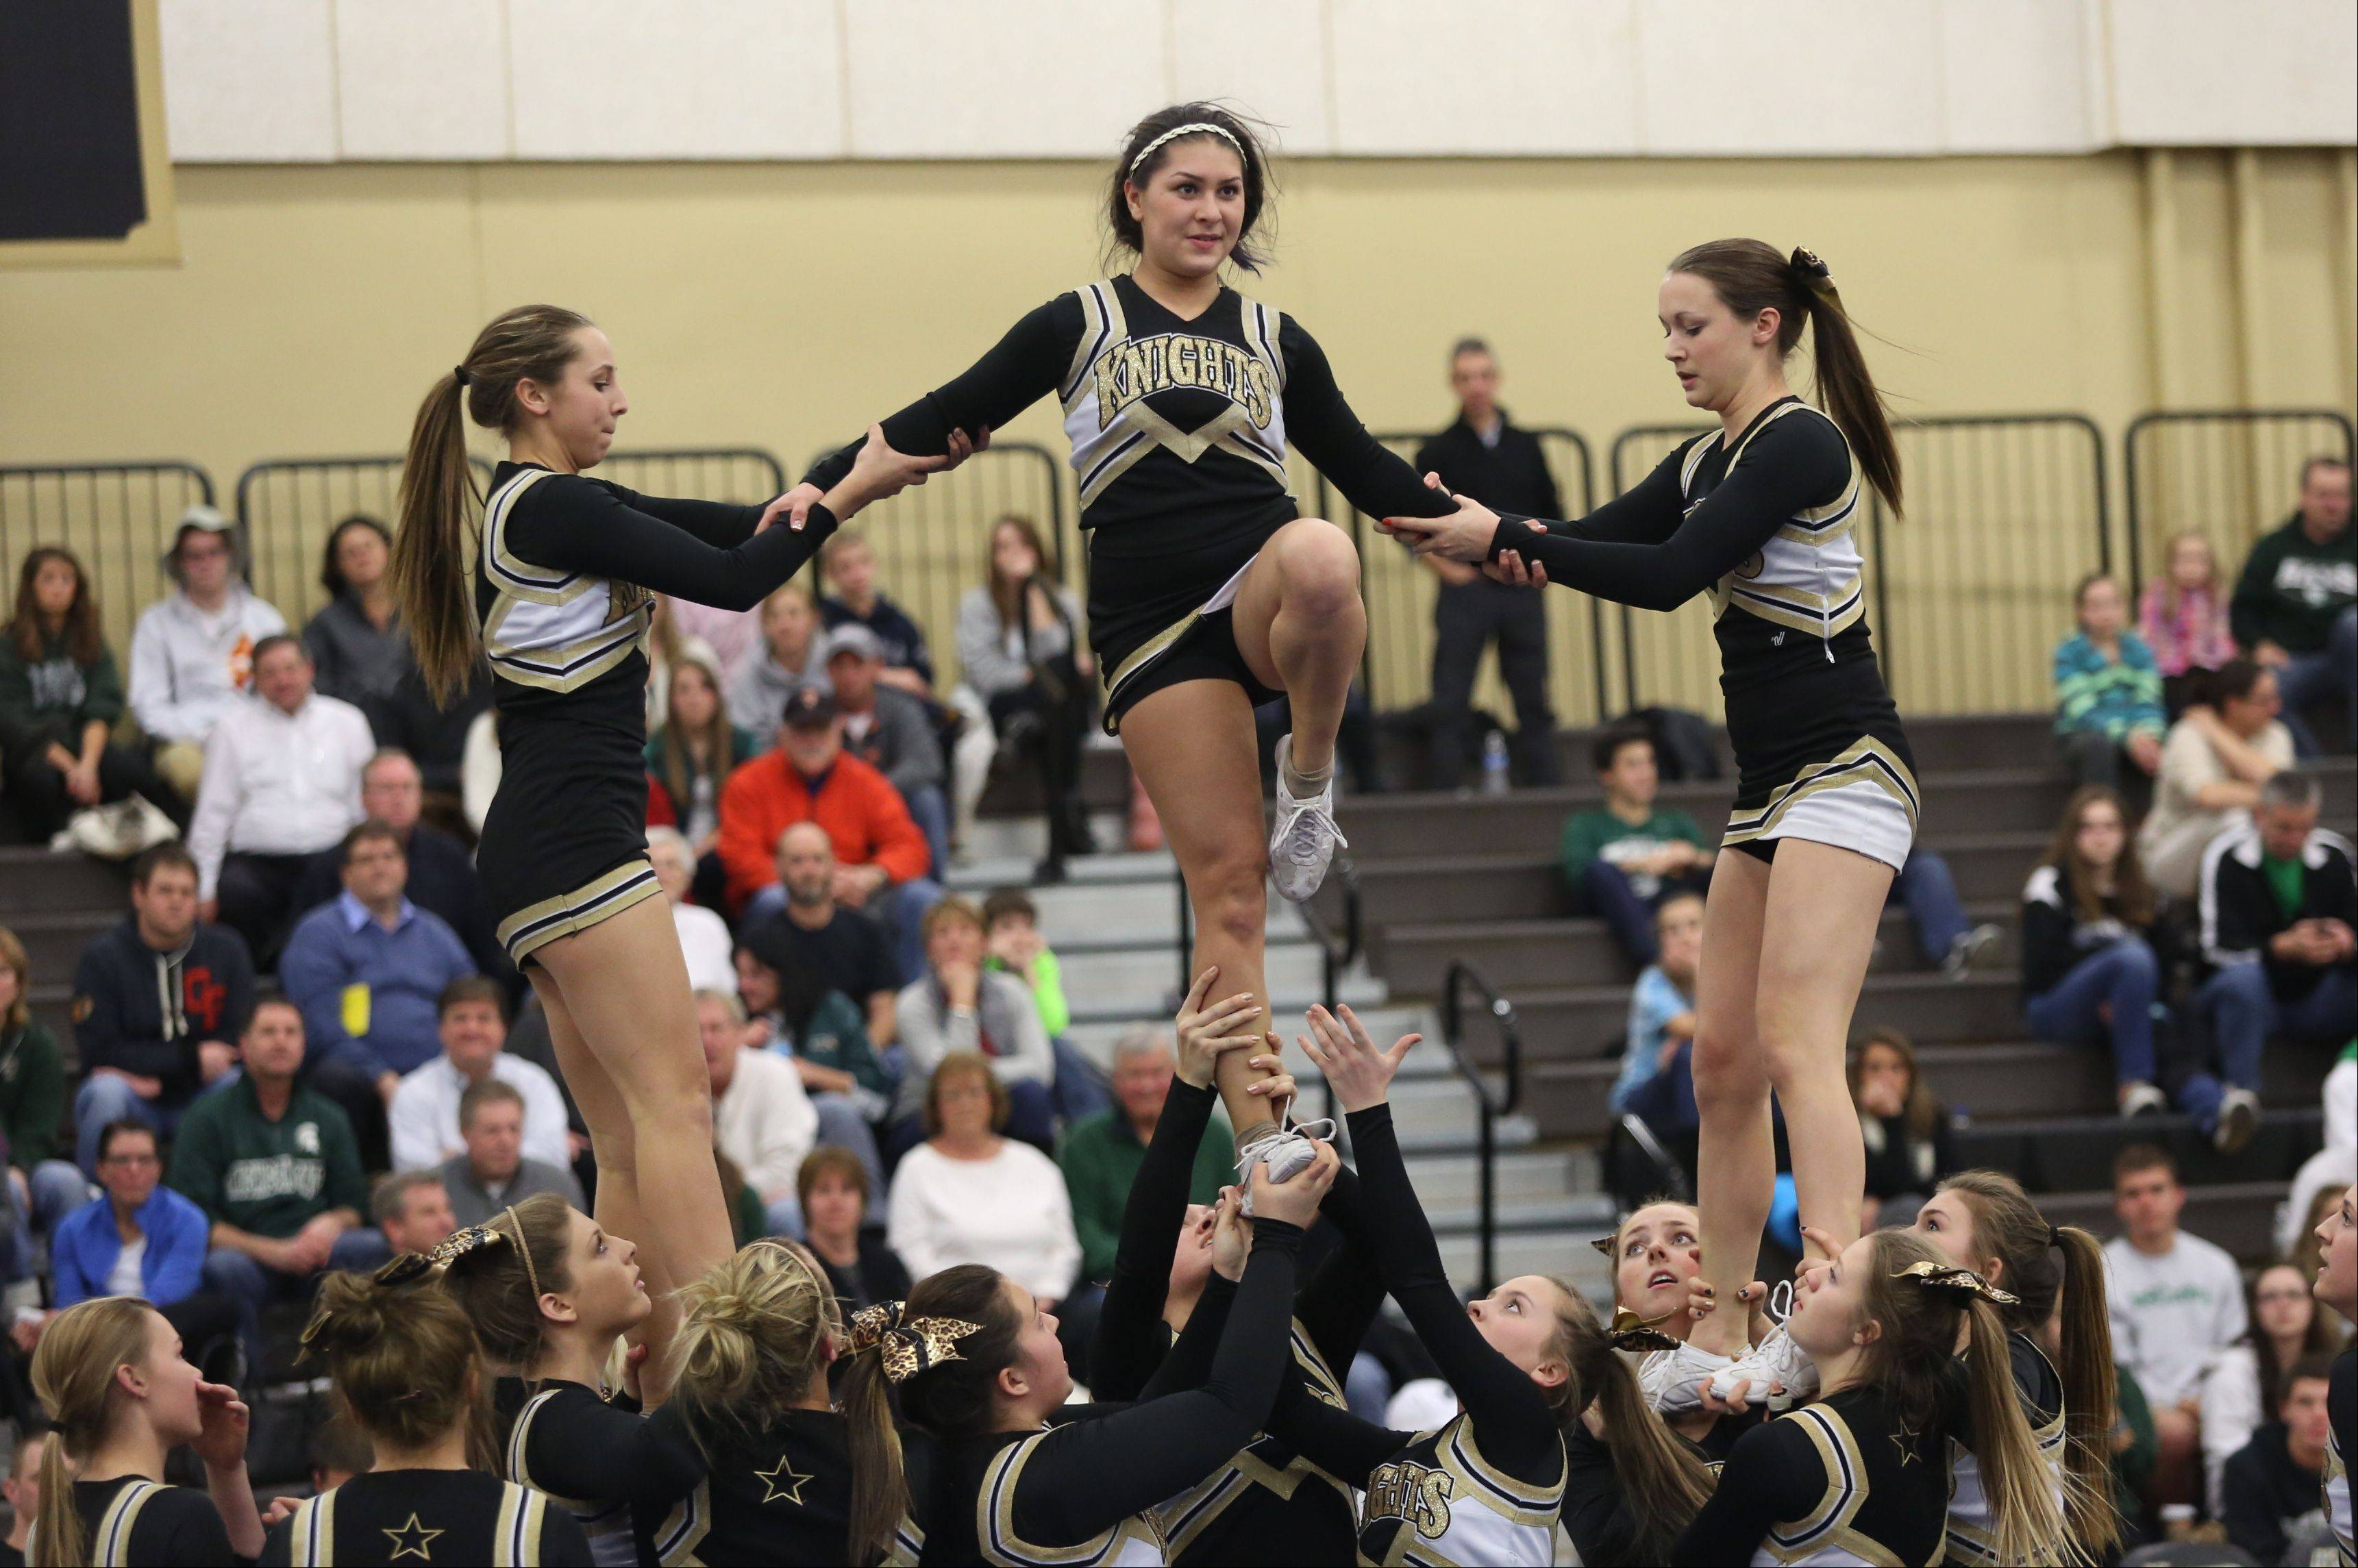 Images from the Grayslake Central at Grayslake North girls basketball game on Thursday, January 9.